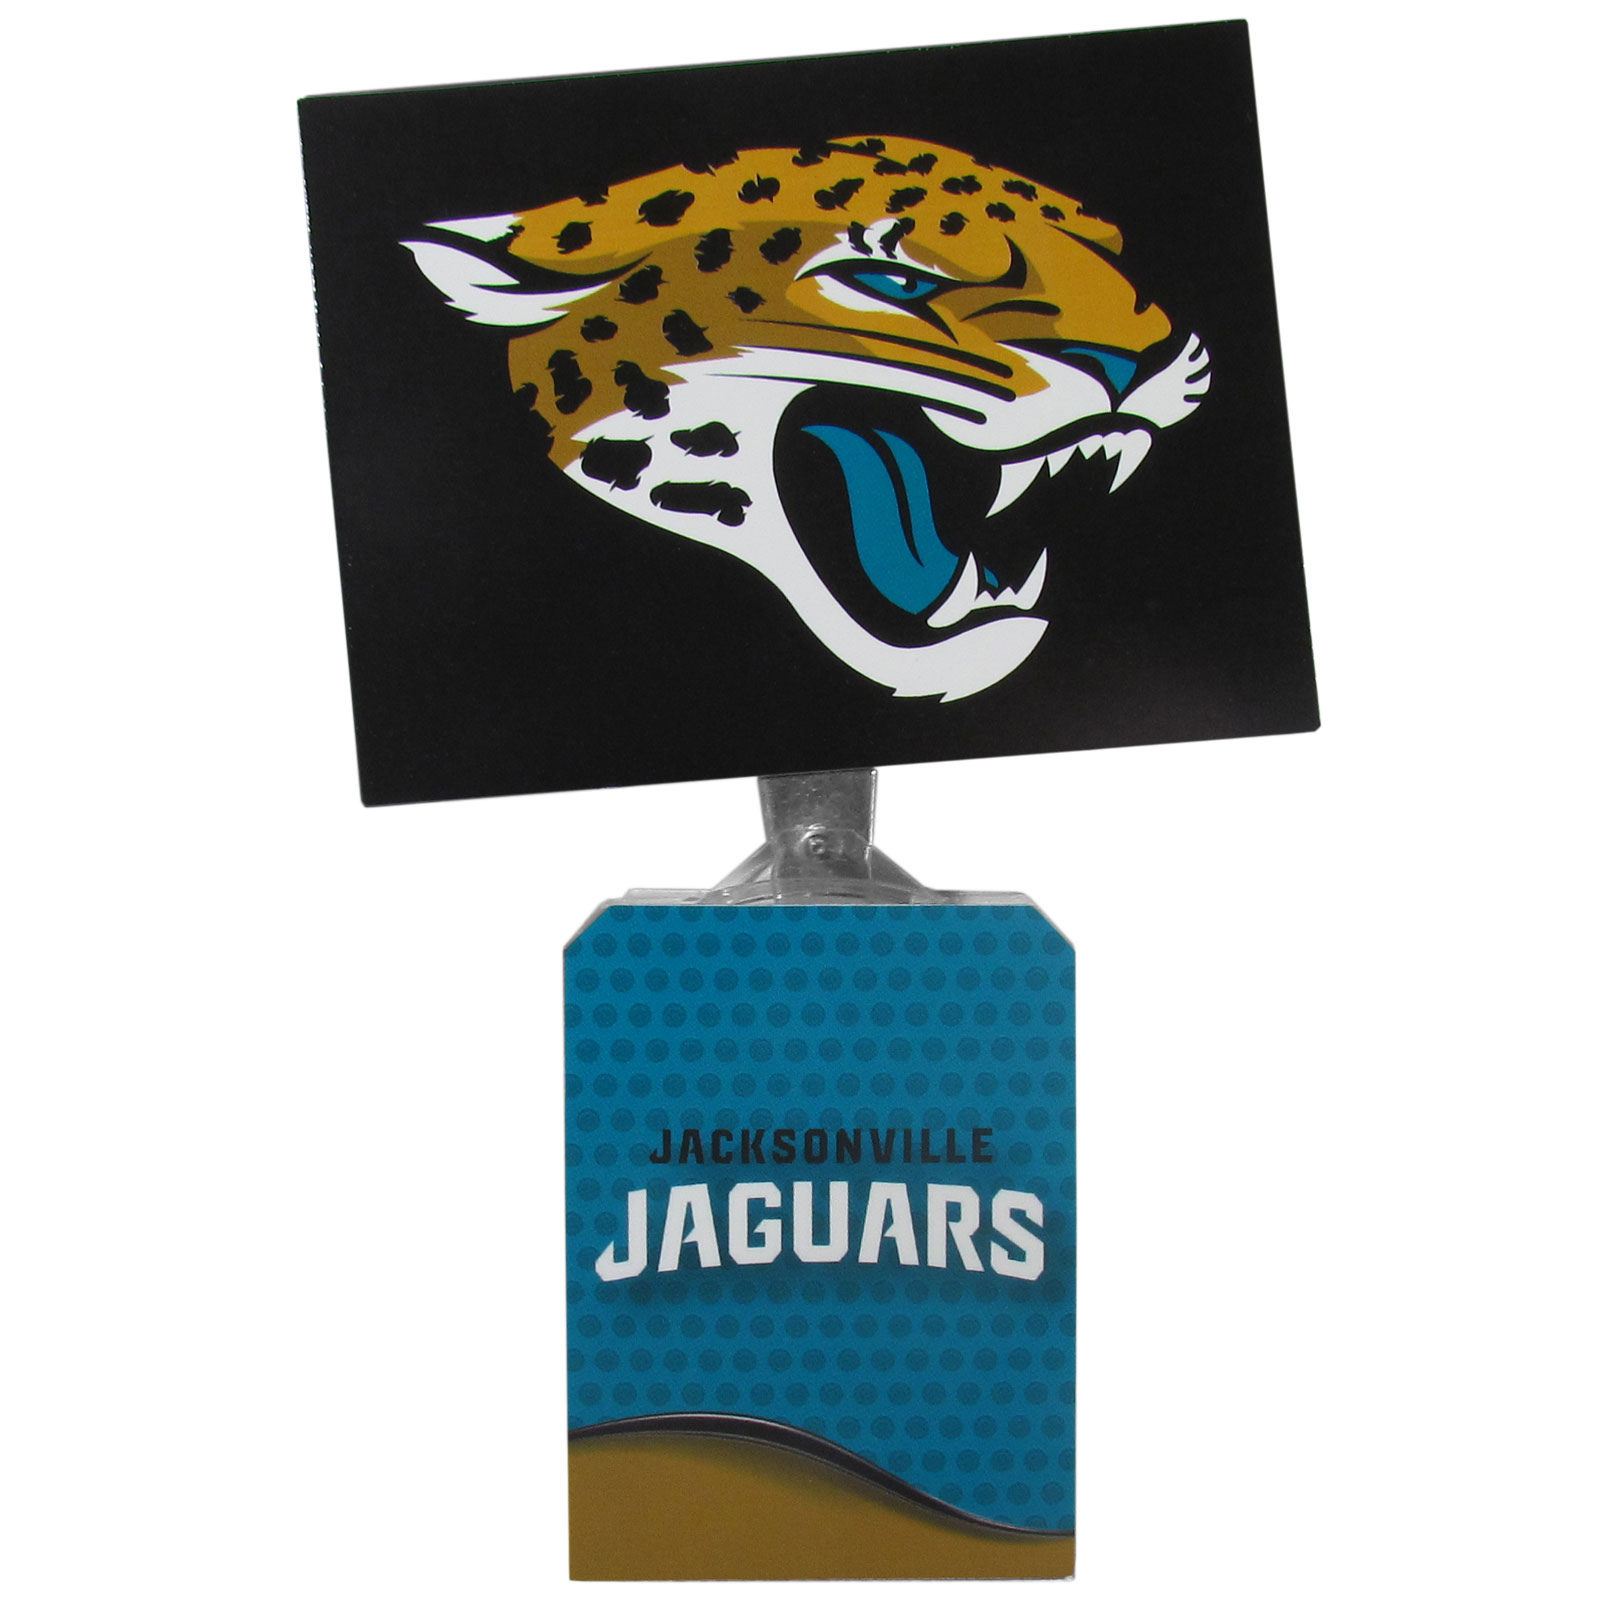 Jacksonville Jaguars Solar Flags - Get pumped up on the way to game with Siskiyou's Chicago Bears Jacksonville Jaguars Solar Flag that mounts to your dashboard or window. The in-motion solar flag also doubles as decoration for your tailgate or homegate! The base of the flag is 3 inches tall and the flag is 4 inches making the entire in-motion solar flag stand at 7 inches tall. Keep your spirit moving with your favorite team's Solar Flag.